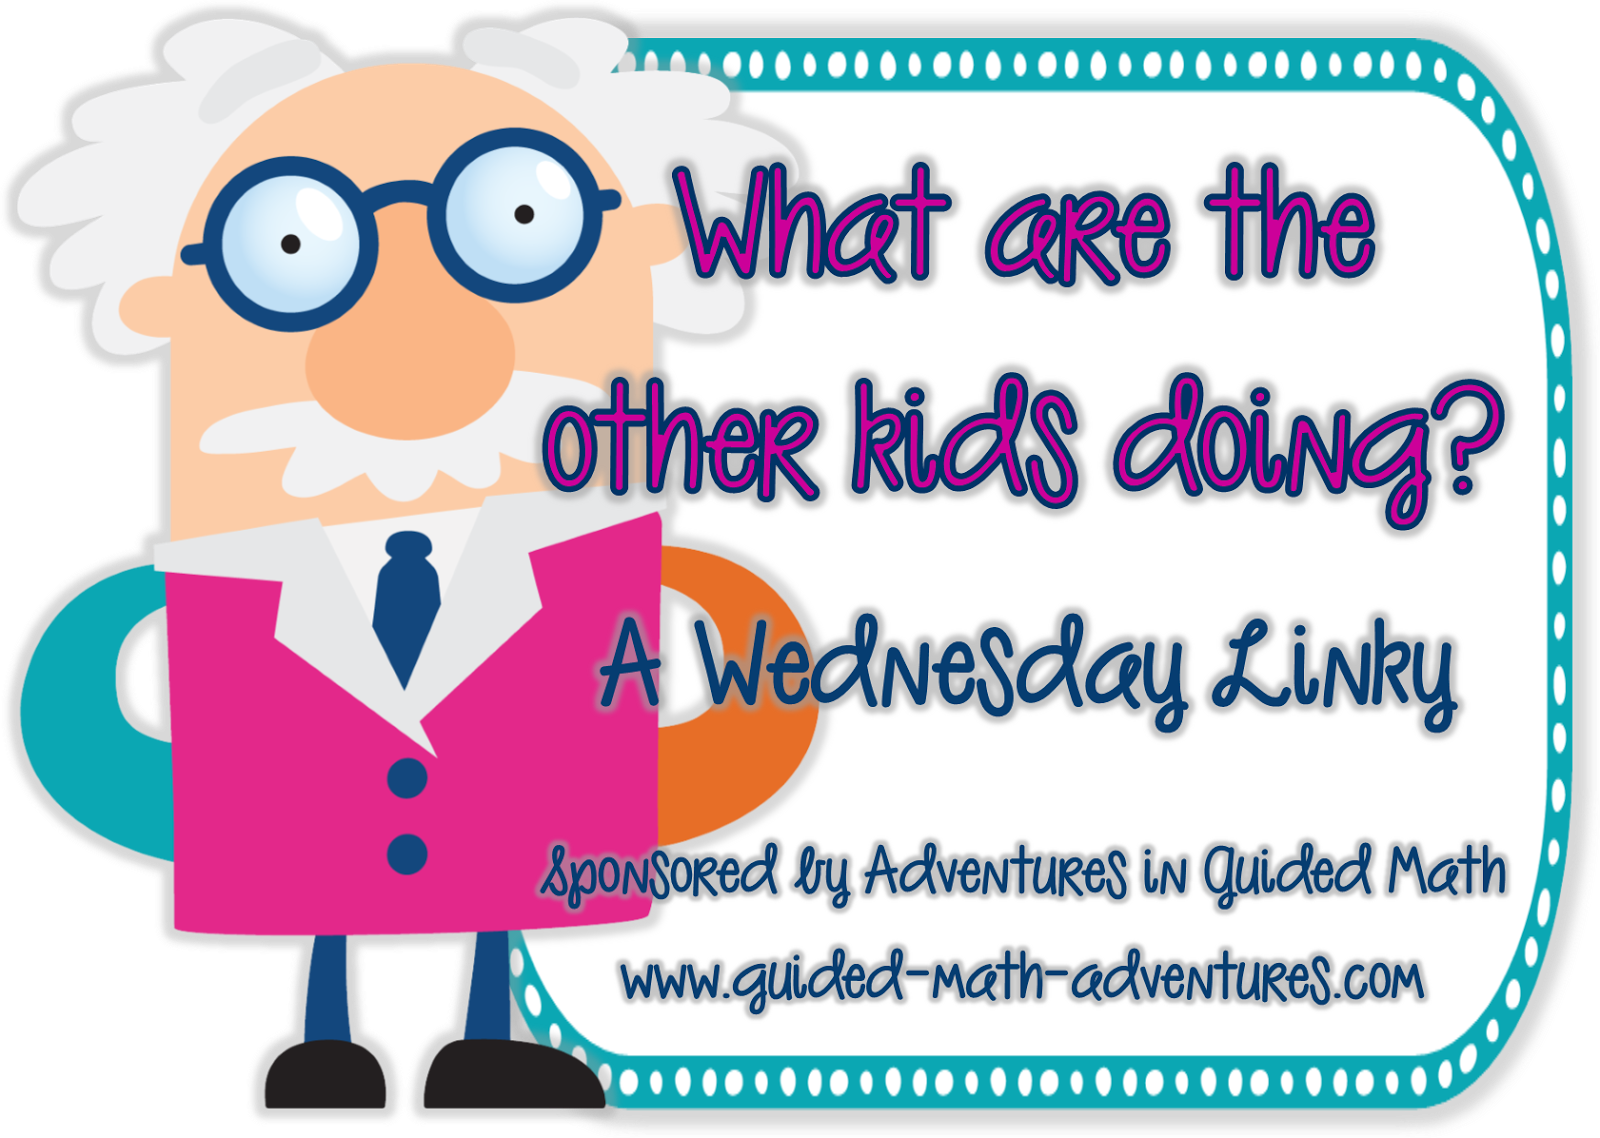 http://www.guided-math-adventures.com/2014/09/what-are-other-kids-doing-wednesday_10.html